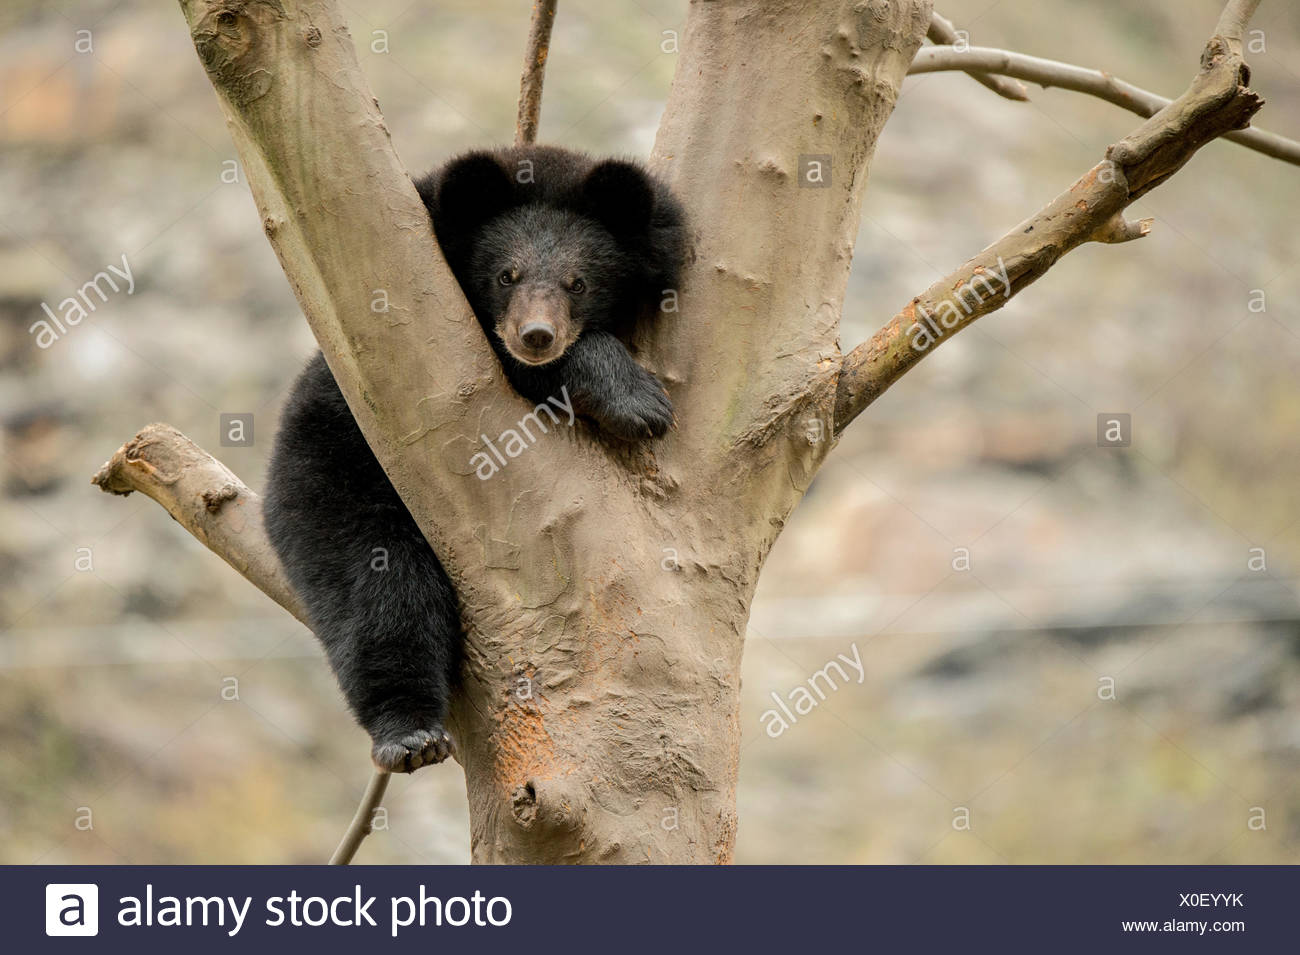 A captive Asiatic black bear in a tree. The bears are used to help train captive giant pandas that are being released into the wild. - Stock Image